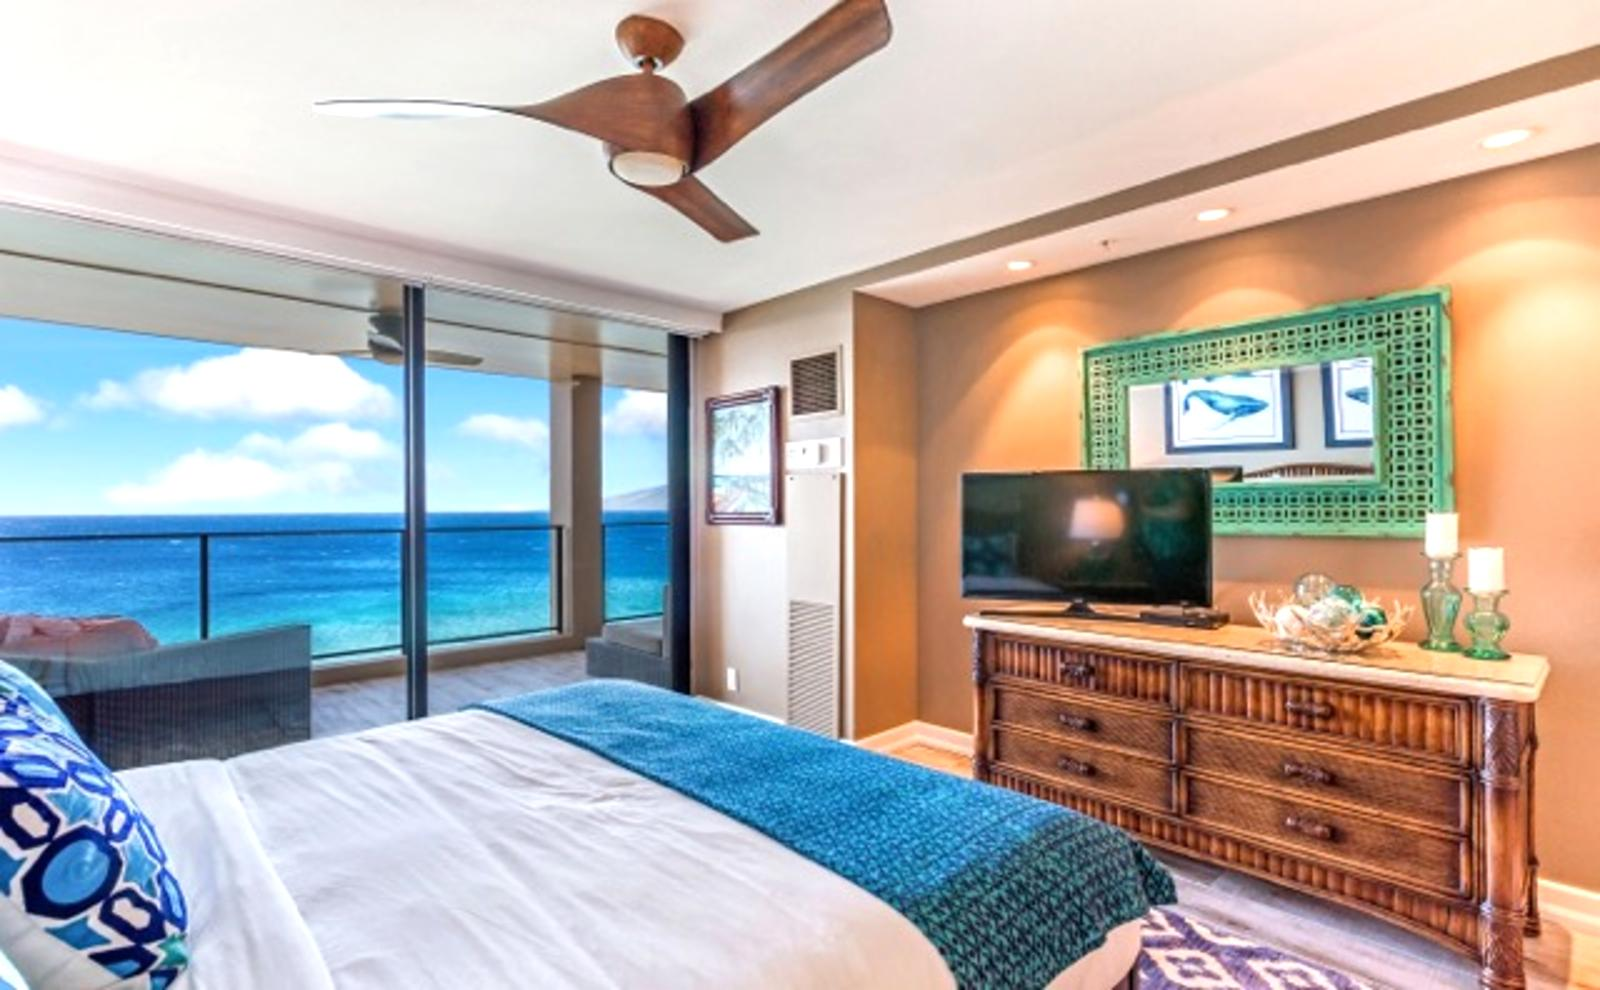 Sleep next to the sounds of the ocean